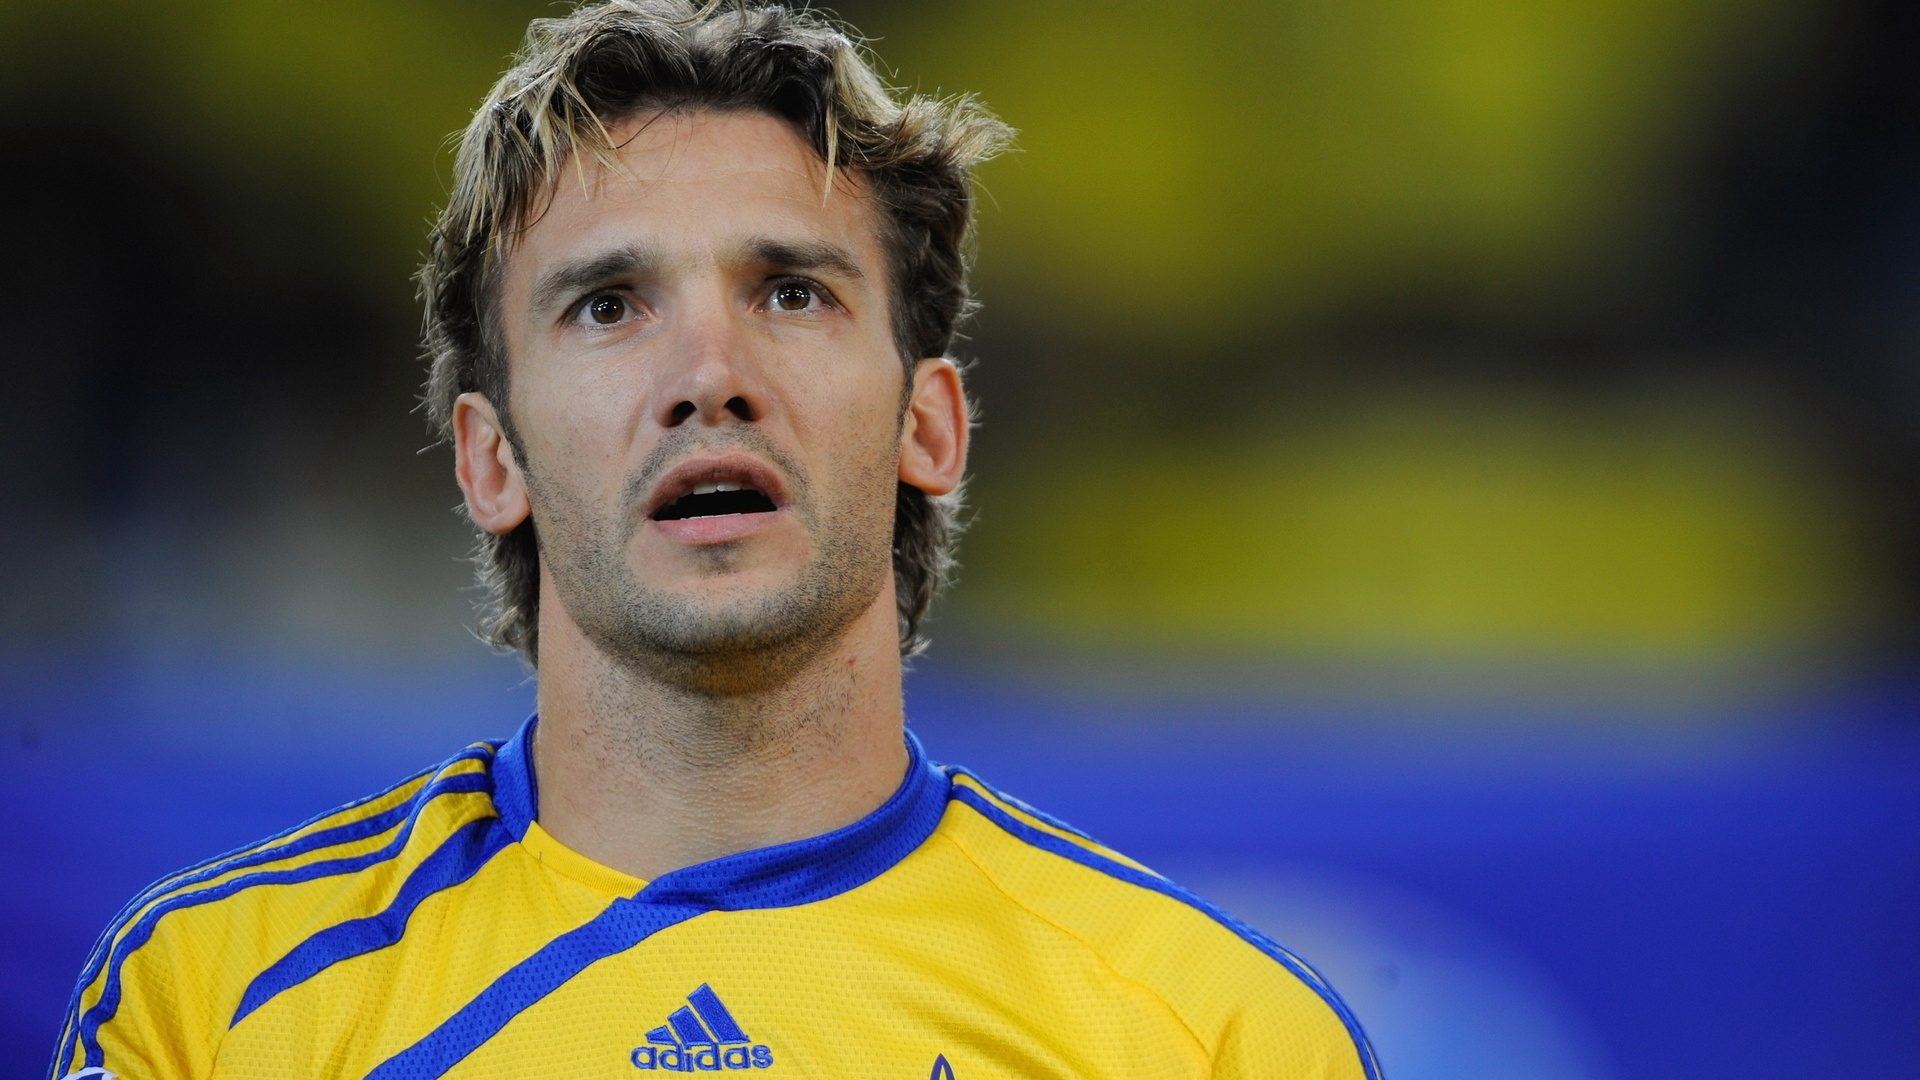 Andry Shevchenko And His Successful Life Lessons Tes Teach